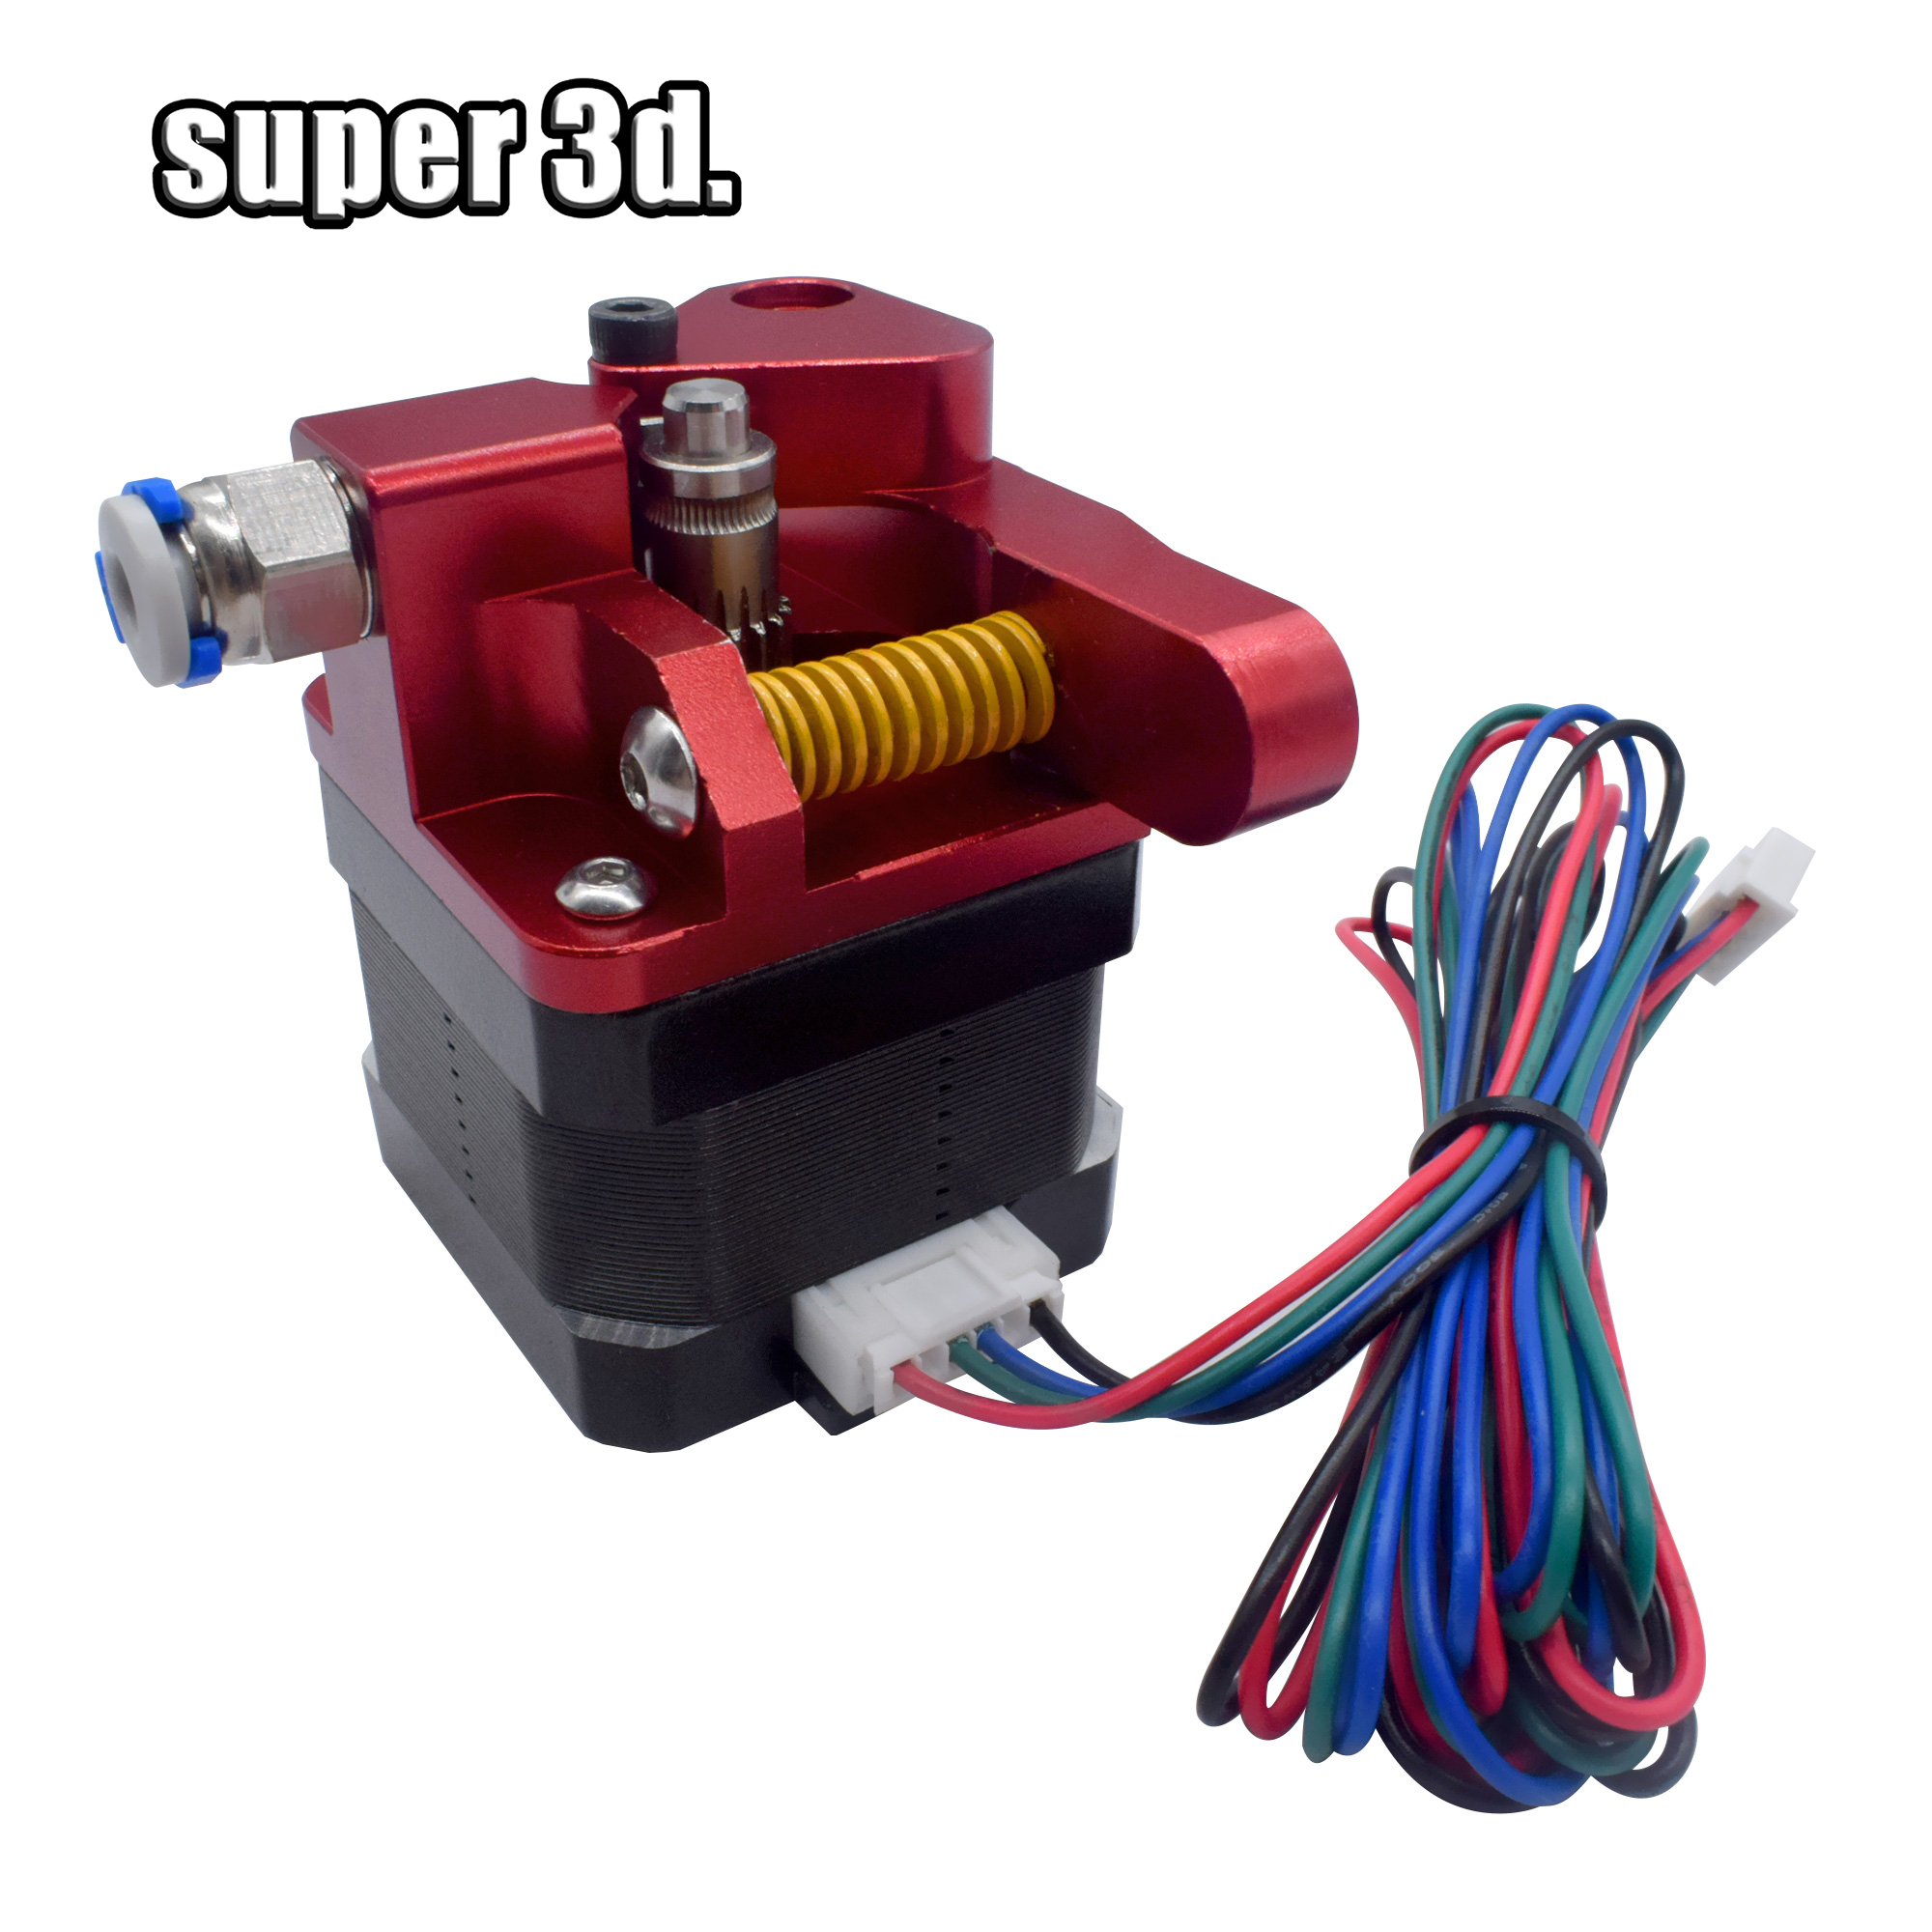 Aluminum Upgrade Dual Gear Mk8 Metal  Extruder Kit For CR-10 CR-10S PRO RepRap Prusa I3 1.75mm 3D Parts Drive Feed Double Pulley